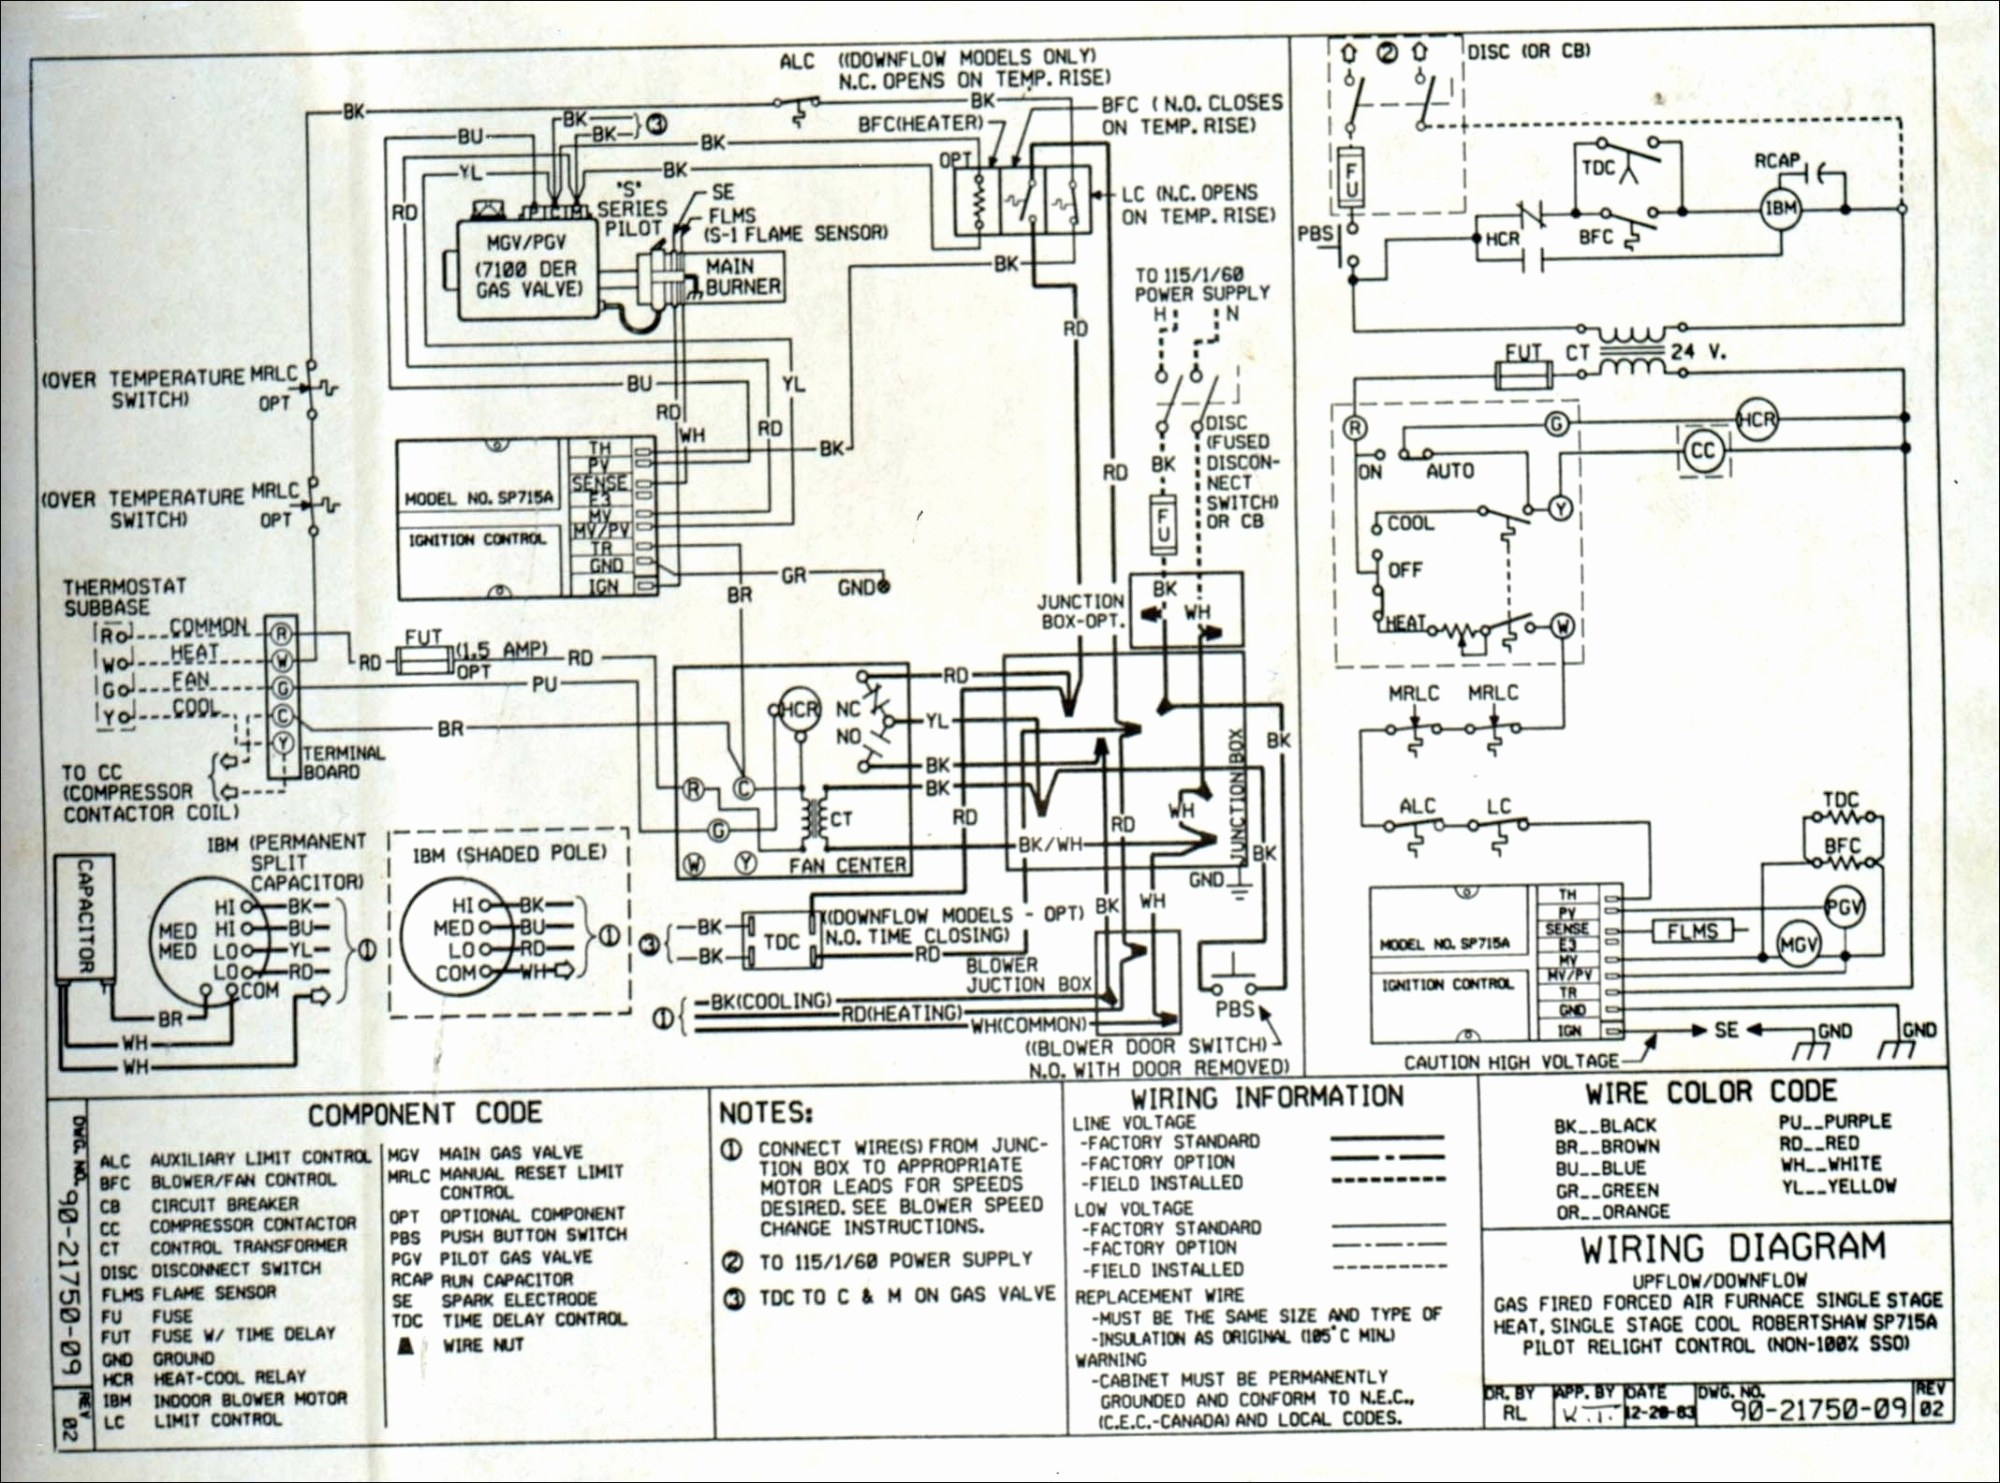 Electric Furnace Wiring Diagram Sequencer - wave inverter ... on